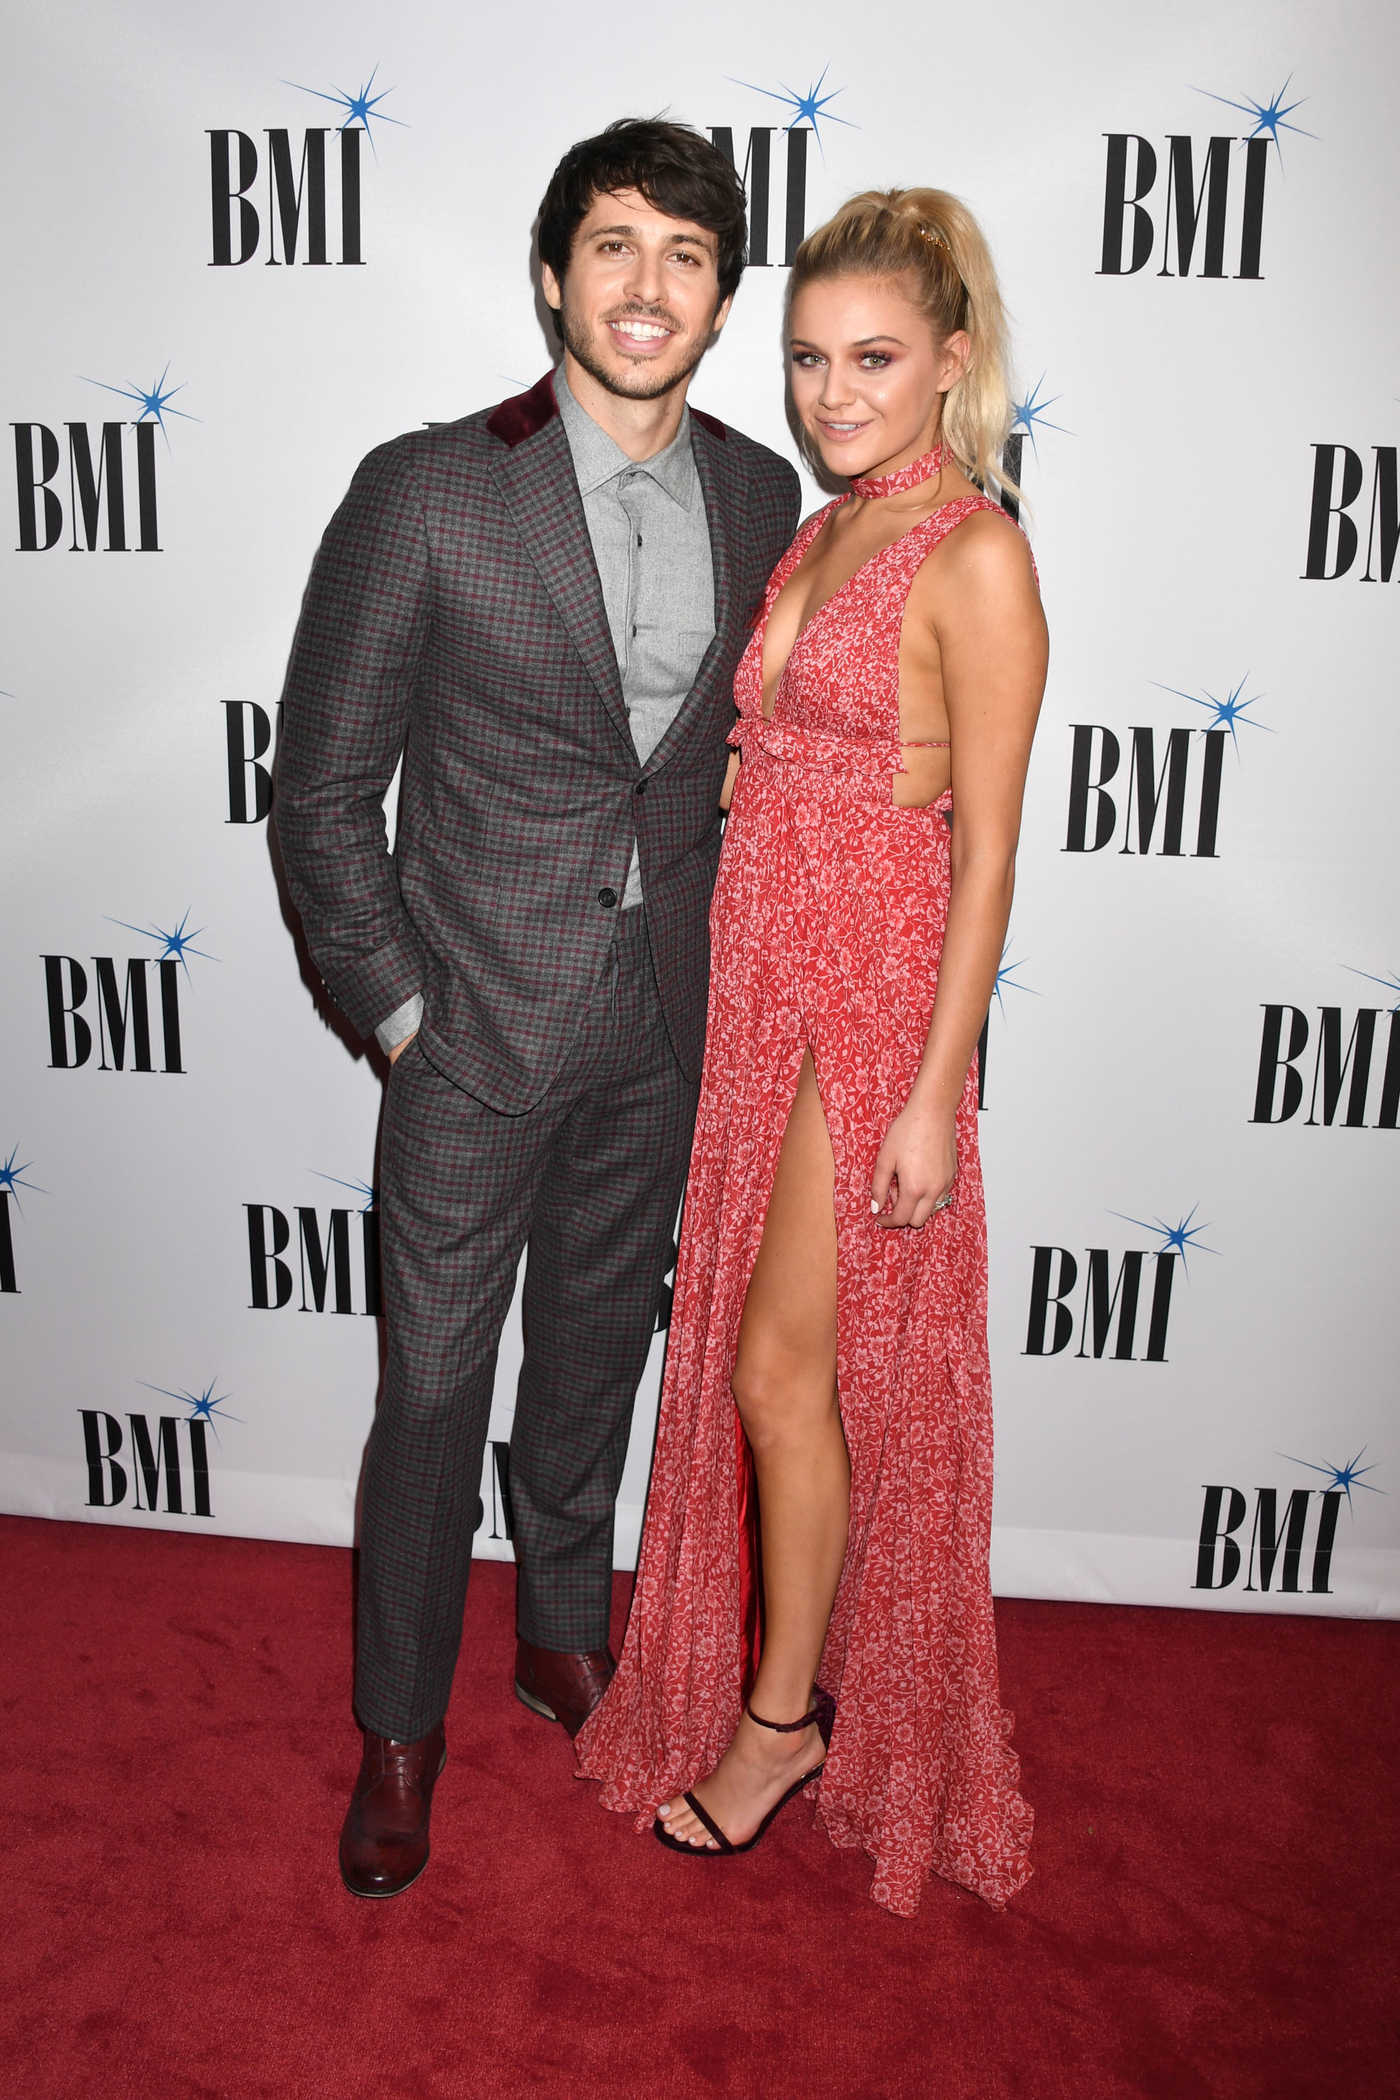 Kelsea Ballerini at the 65th Annual BMI Country Awards in Nashville 11/07/2017